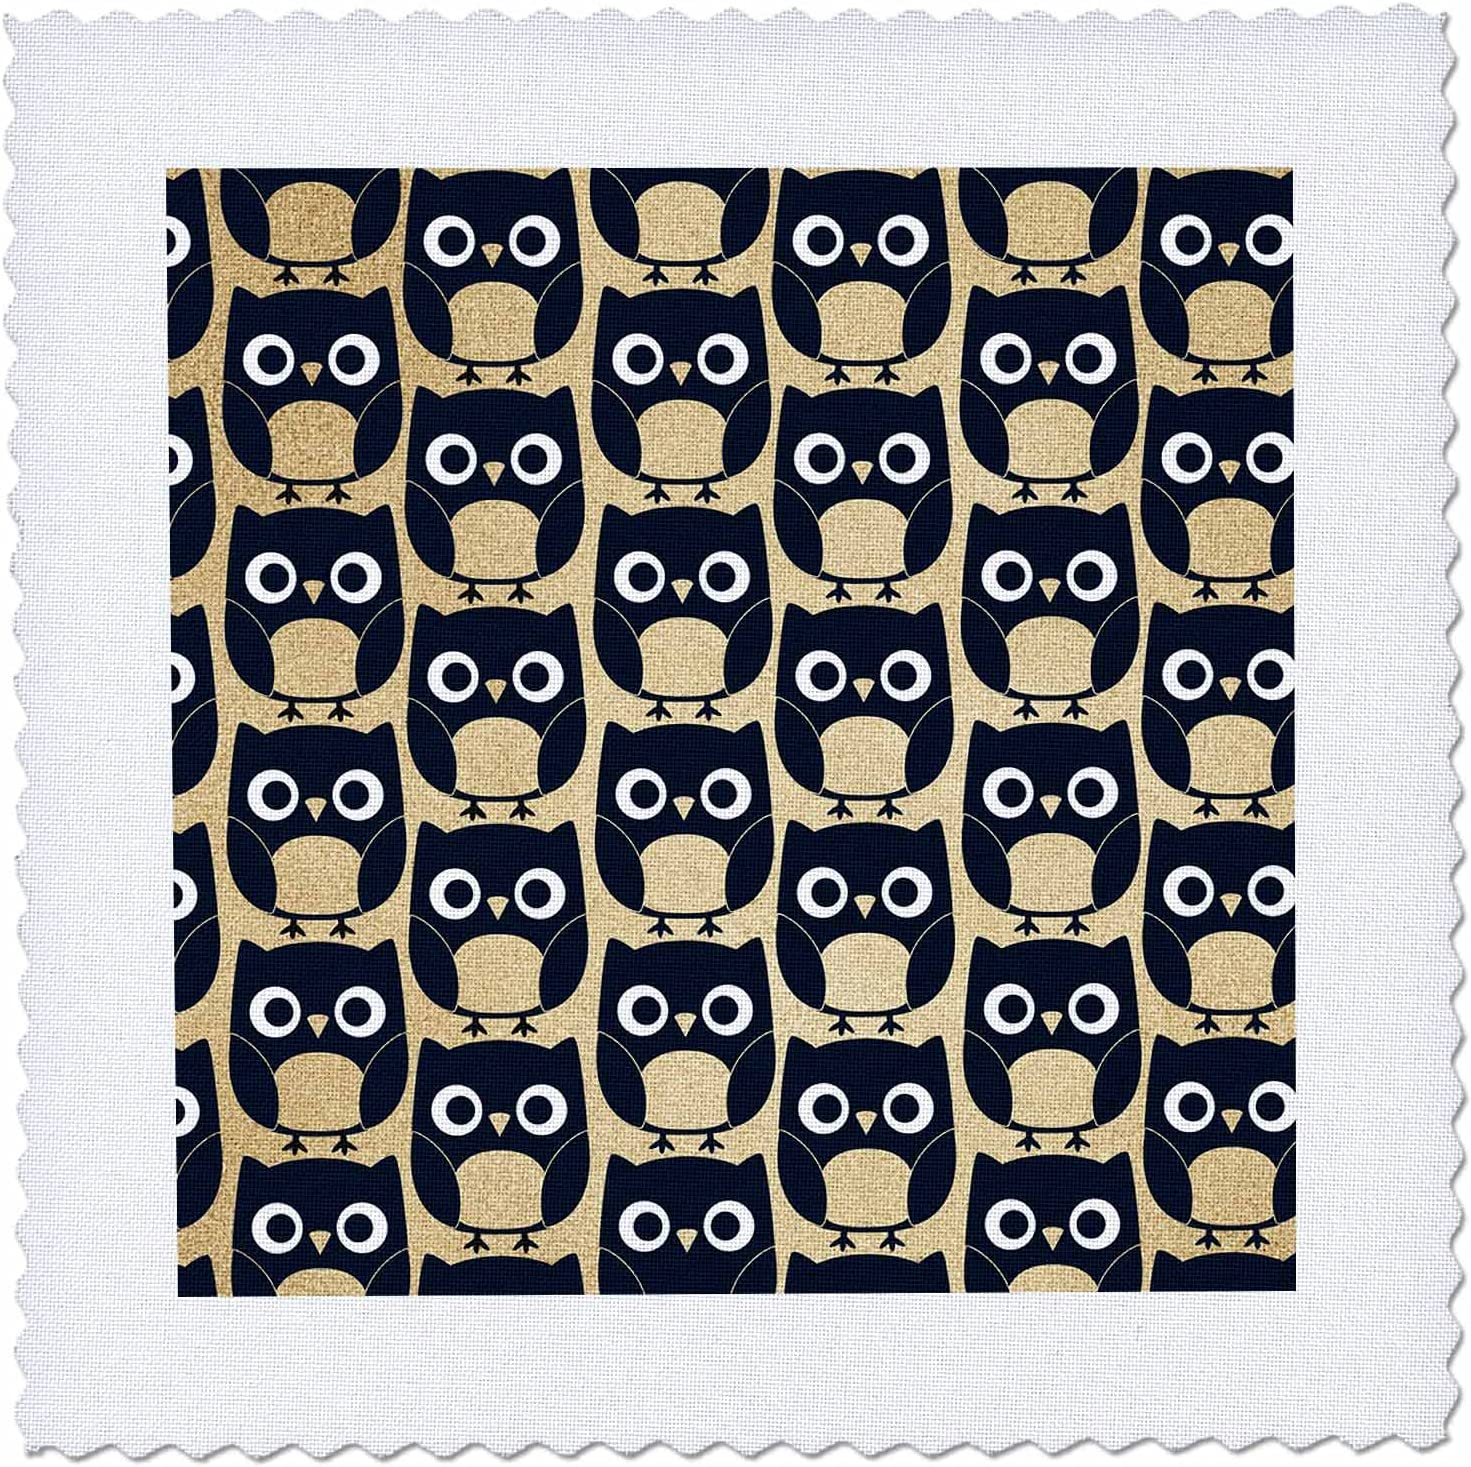 3dRose Cute Black and Image Of lowest price Gold Quilt Indianapolis Mall Owl - Squares Pattern